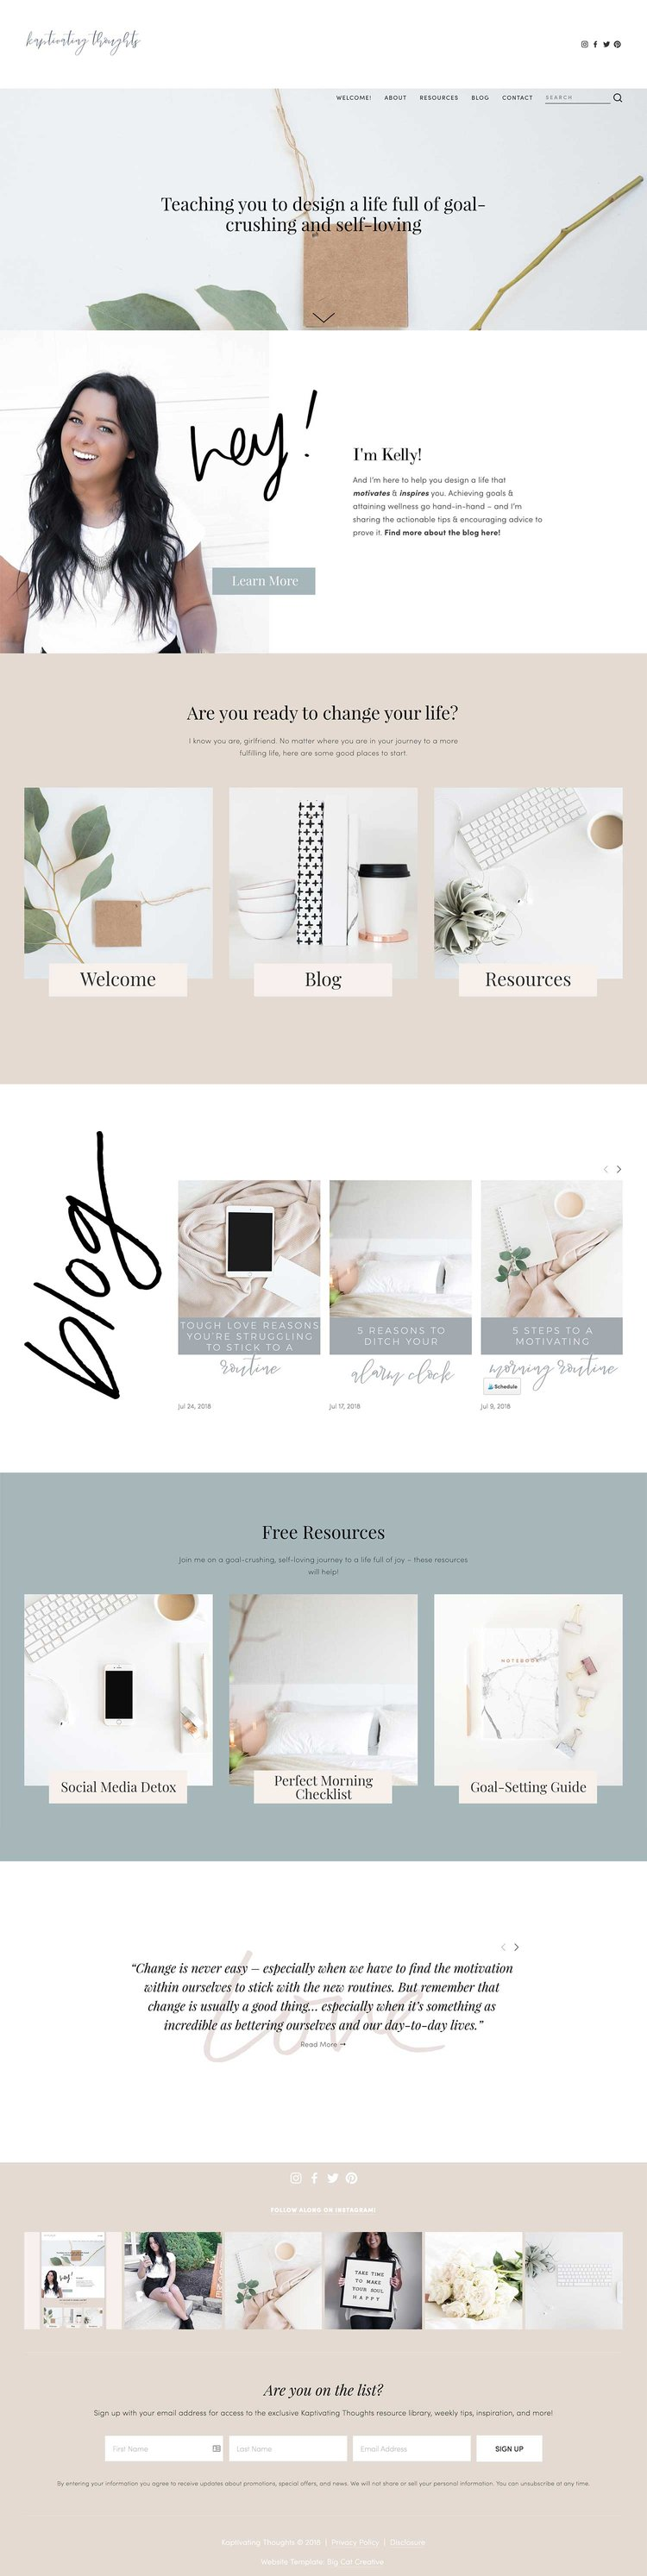 Squarespace Template Showcase Kaptivating Thoughts Big Cat